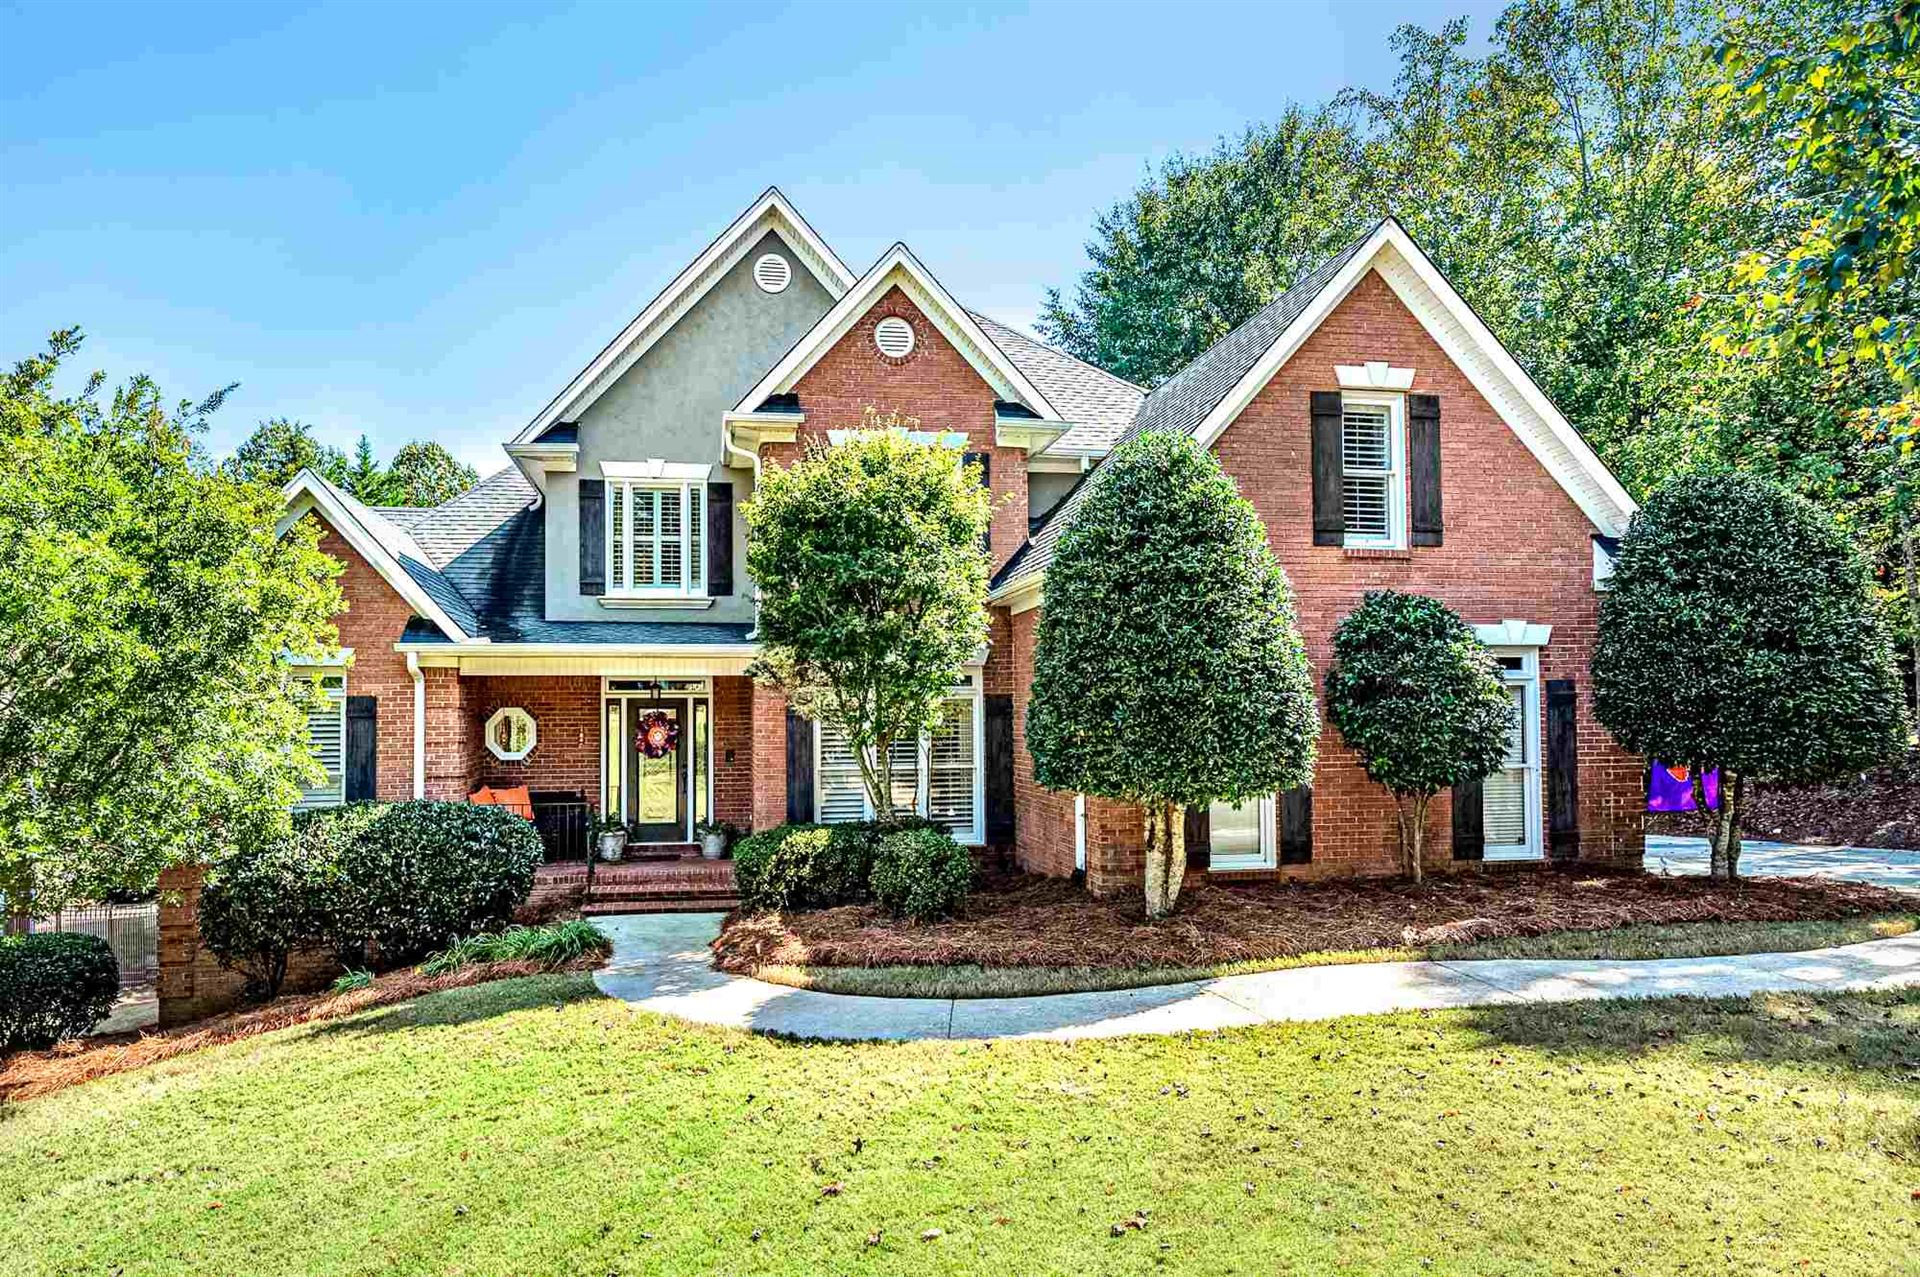 1485 Lake Forest Ln, McDonough, GA 30253 - MLS#: 8874147